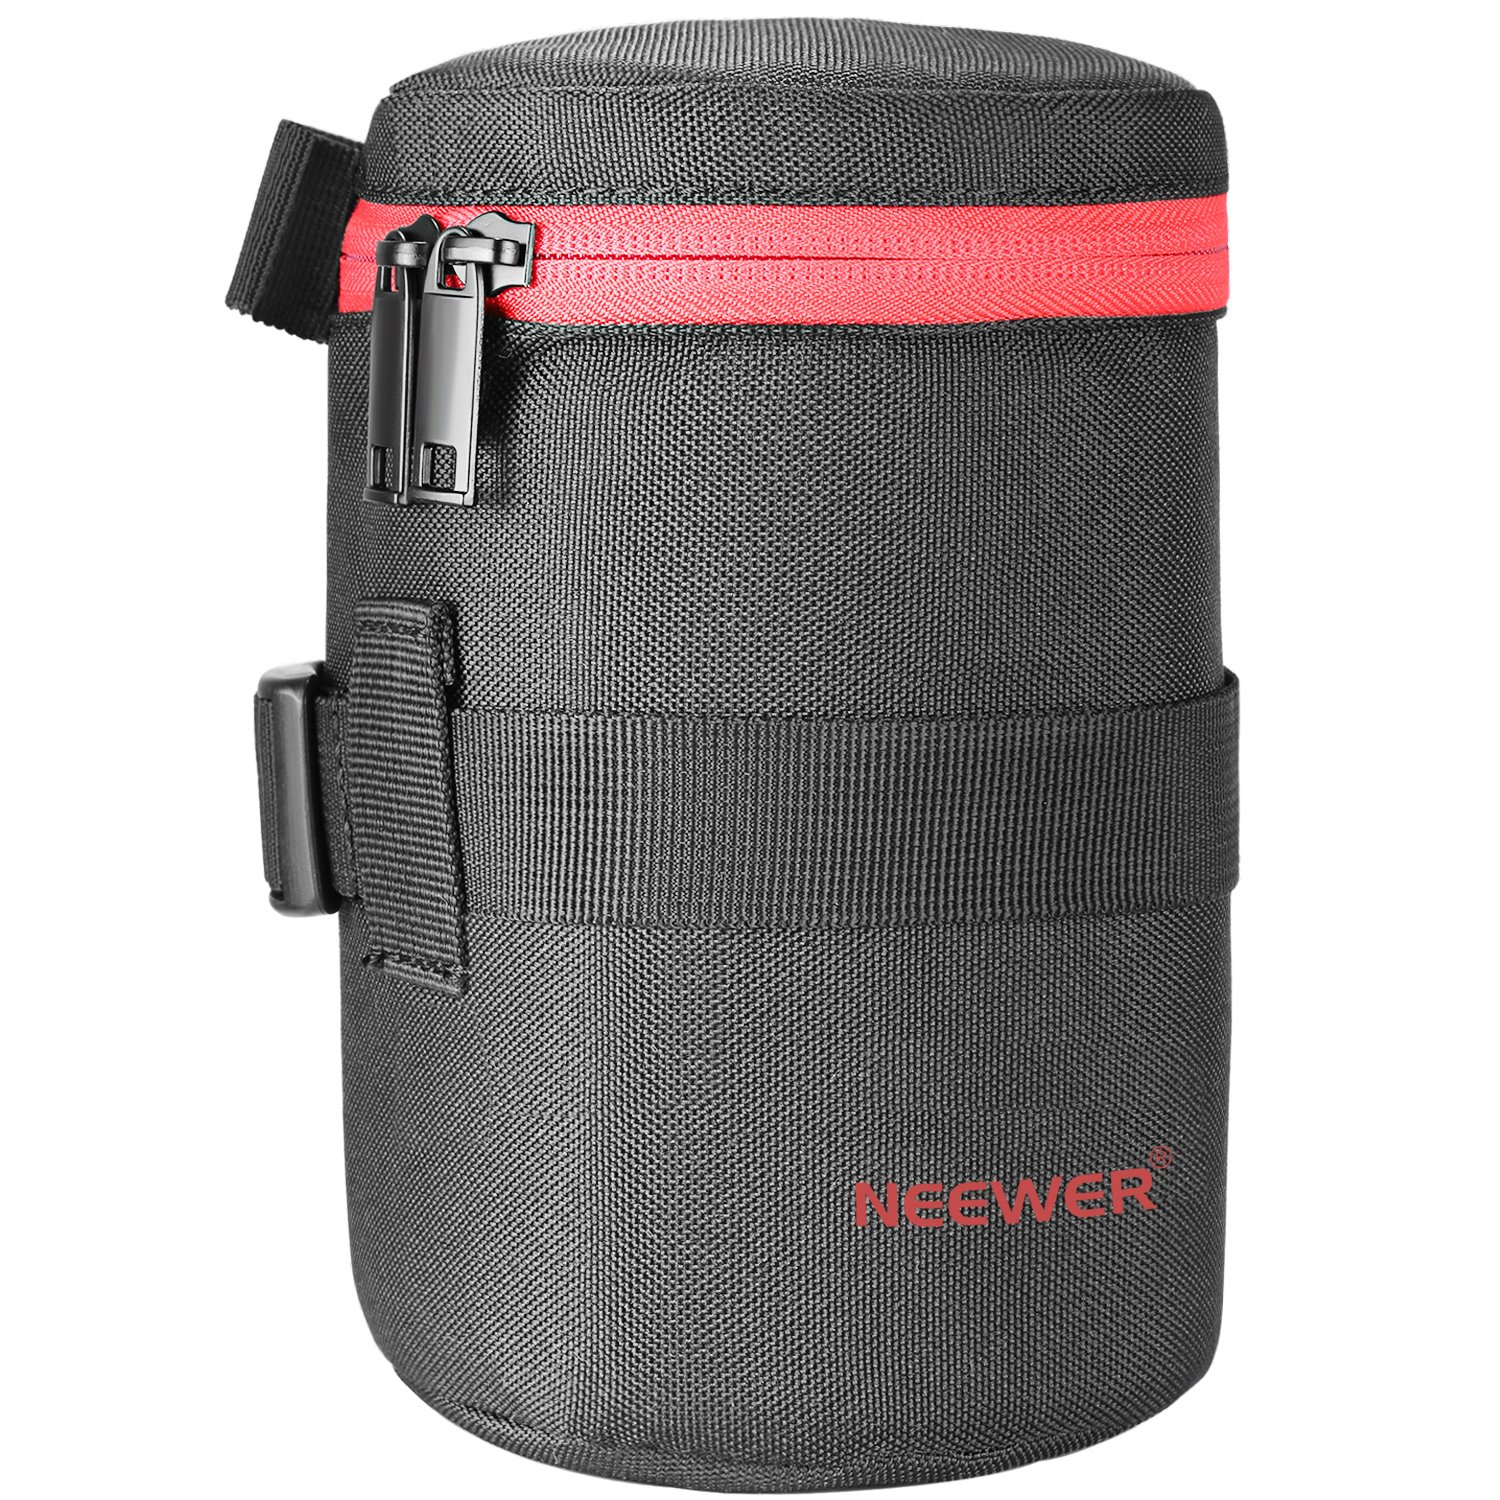 Neewer NW-L2040-R Portable Thick Padded Protective Water Resistant Durable Nylon Lens Pouch Bag for 18-300MM Lens, Such as Canon 100MM 70-300lS 75-300 and Nikon 55-300 28-300 105VR 70-300 10089676